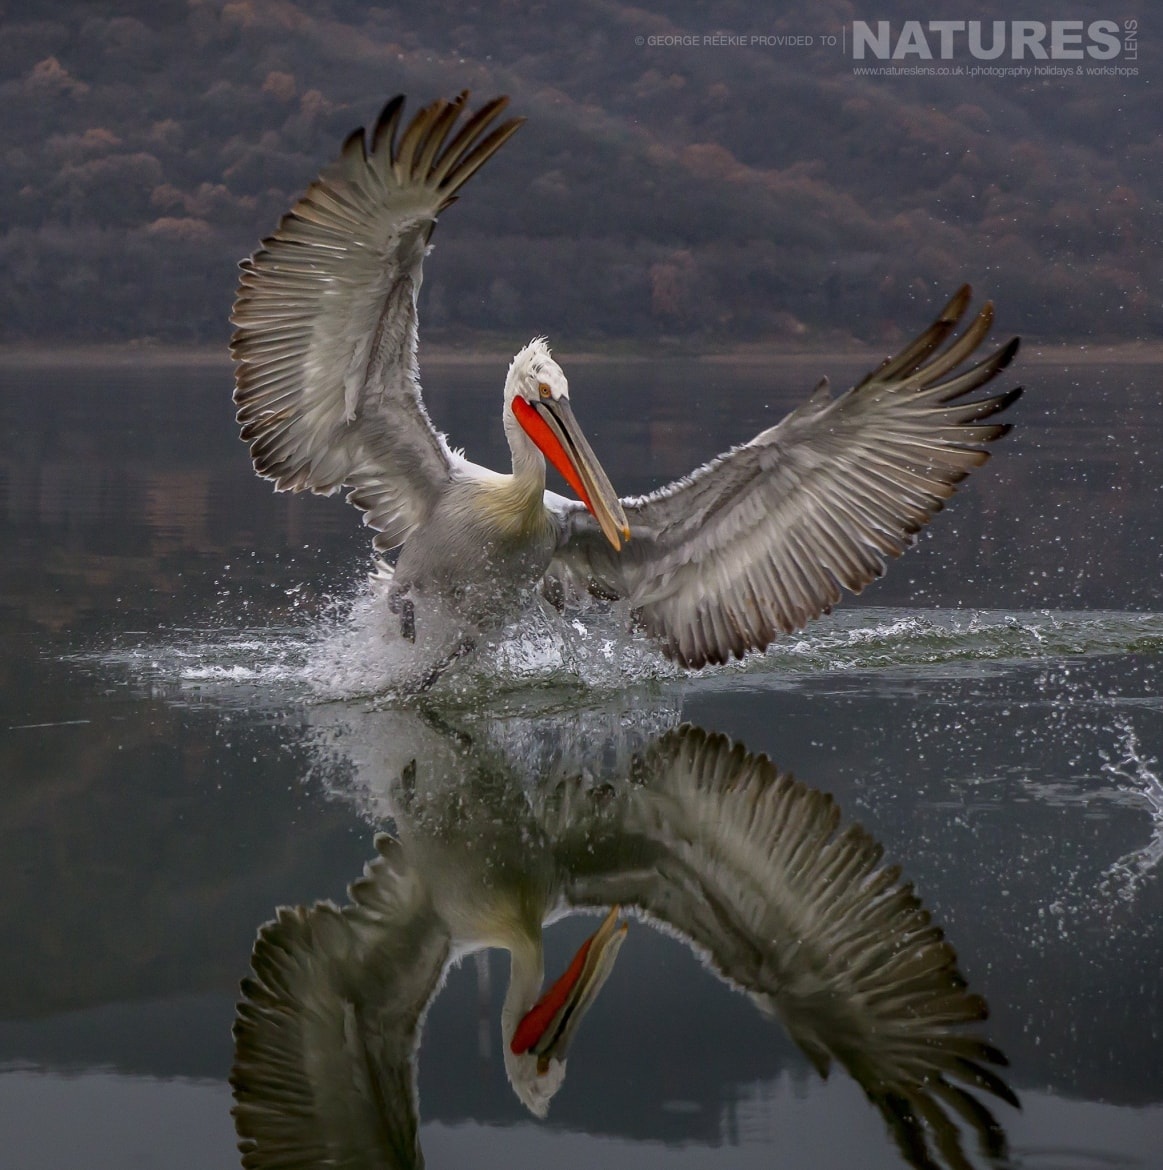 One of the Dalmatian Pelicans making quite a splash in the waters of Lake Kerkini photographed during one of the NaturesLens Dalmatian Pelican Photography Holidays